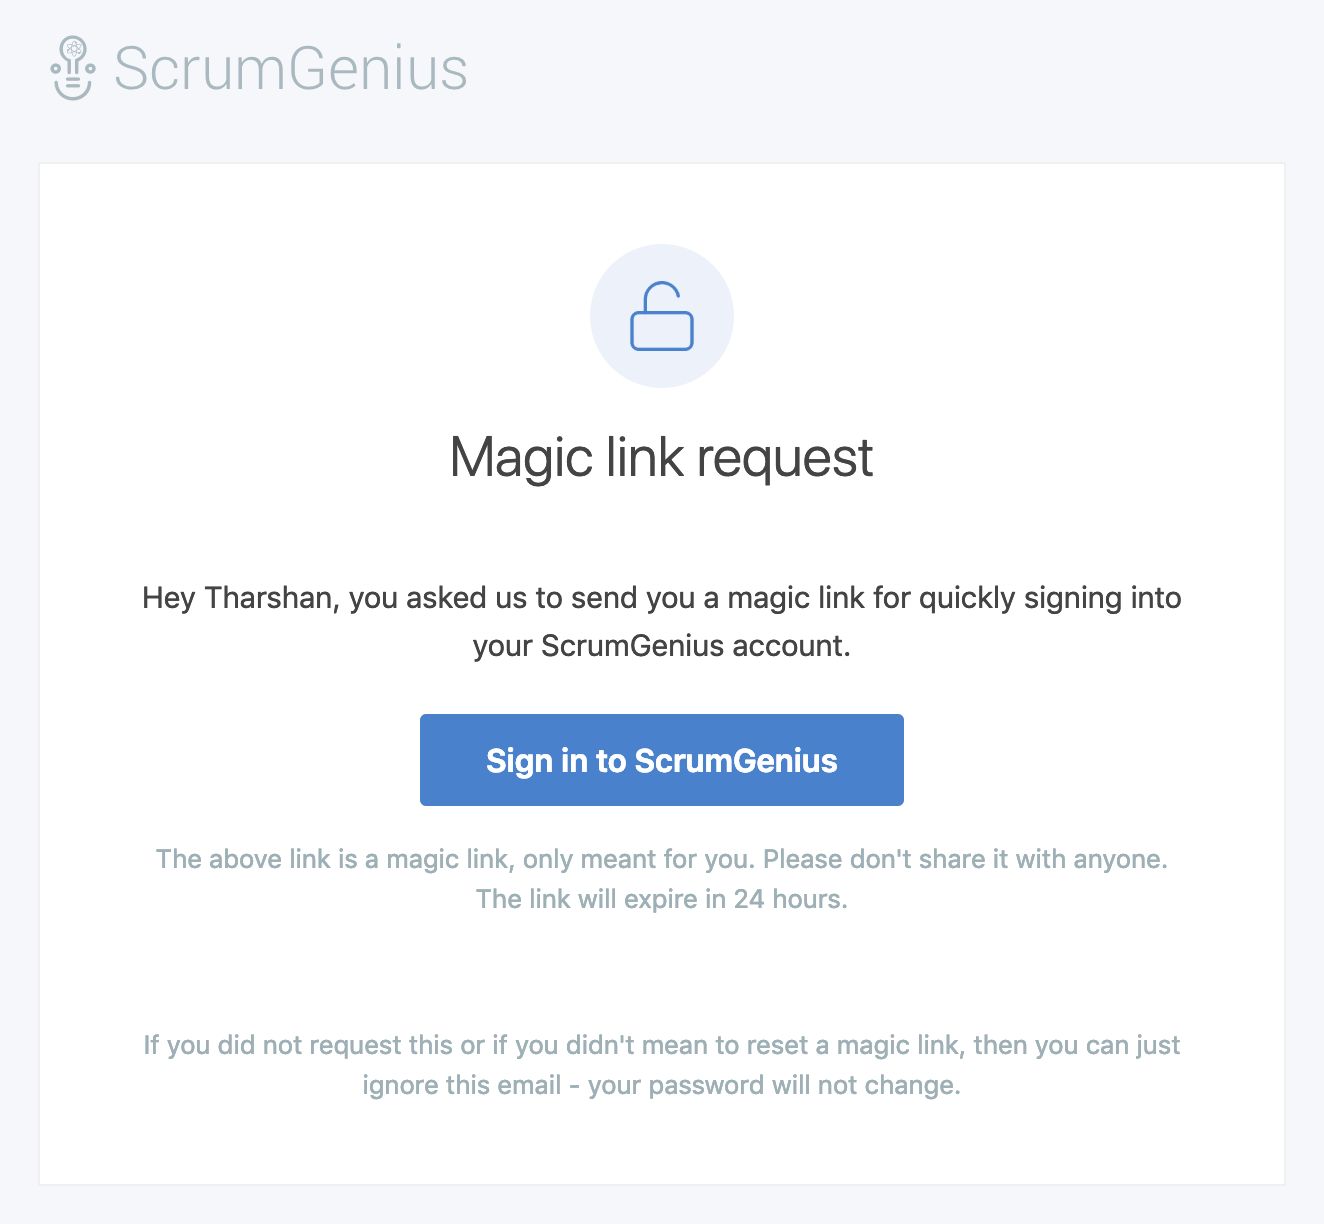 ScrumGenius Magic Link